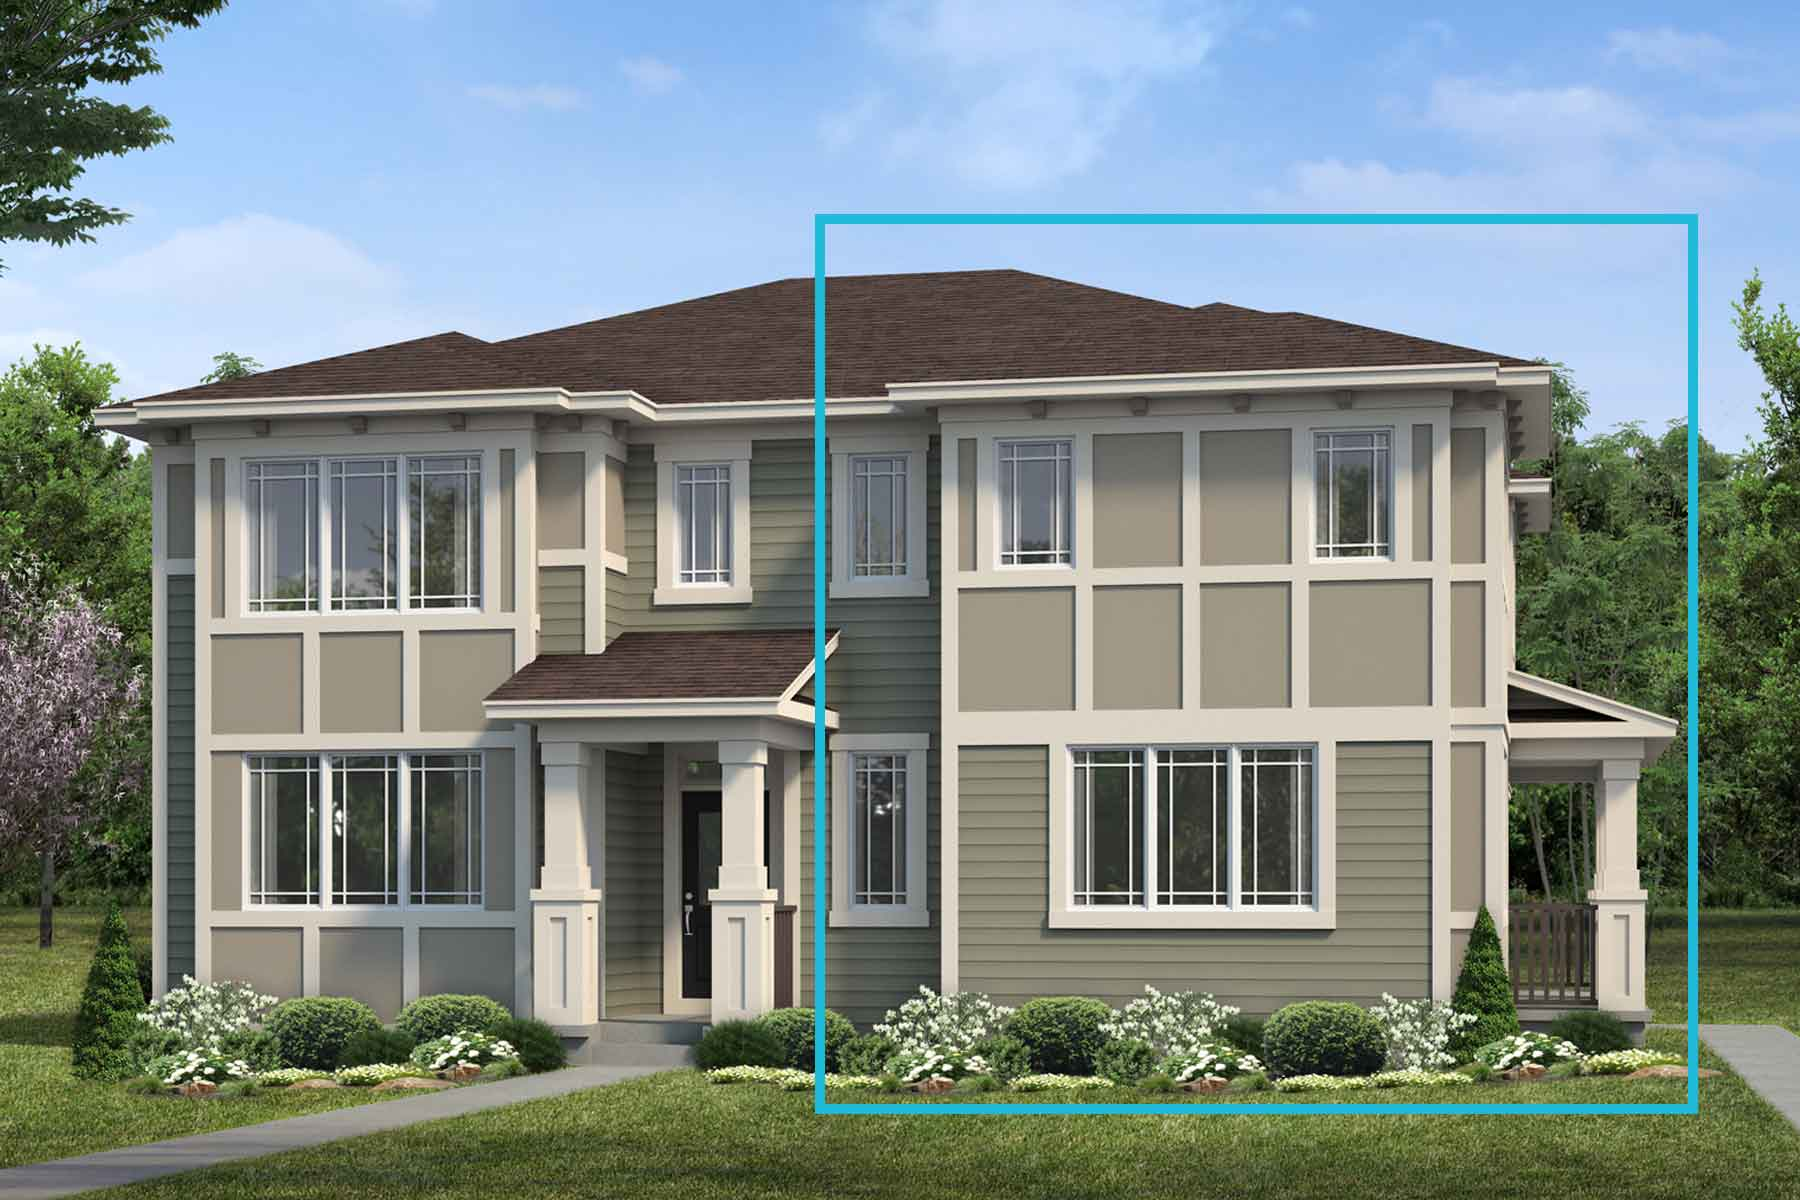 Raymond End Plan elevationprairie_yorkville_sundance at Stillwater in Edmonton Alberta by Mattamy Homes